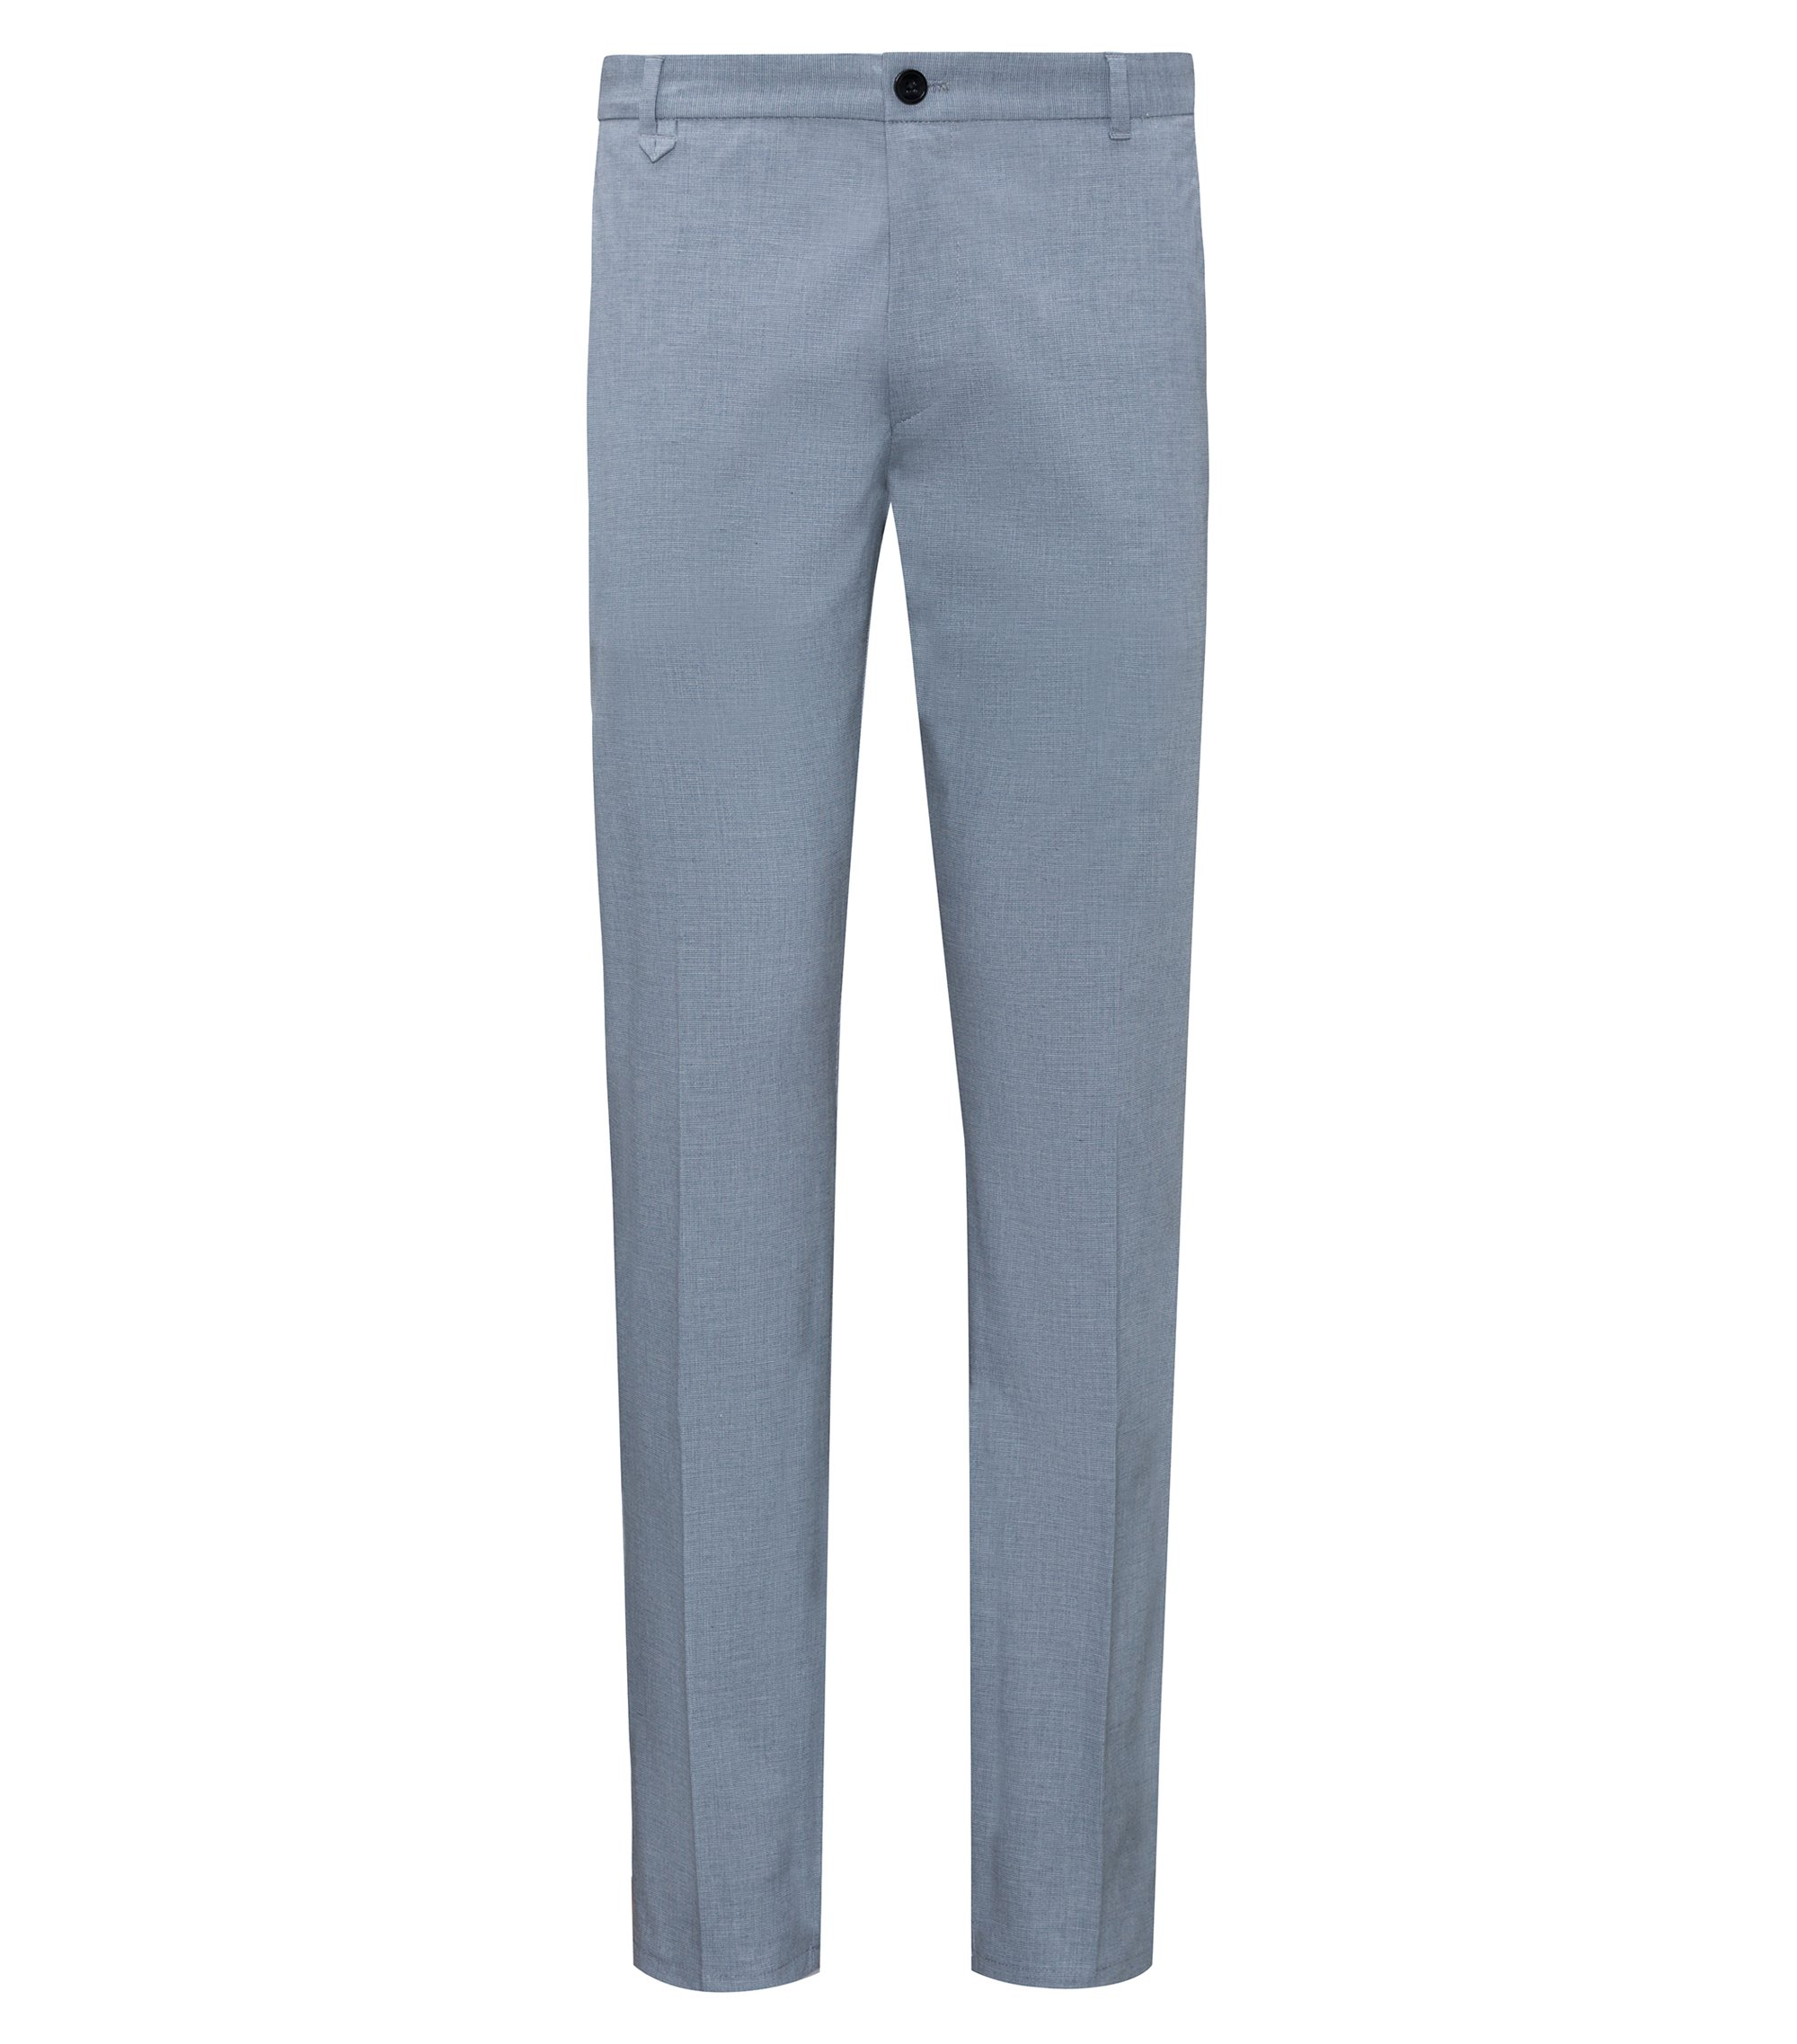 Stretch Cotton Pant, Extra Slim Fit | Heldor, Turquoise